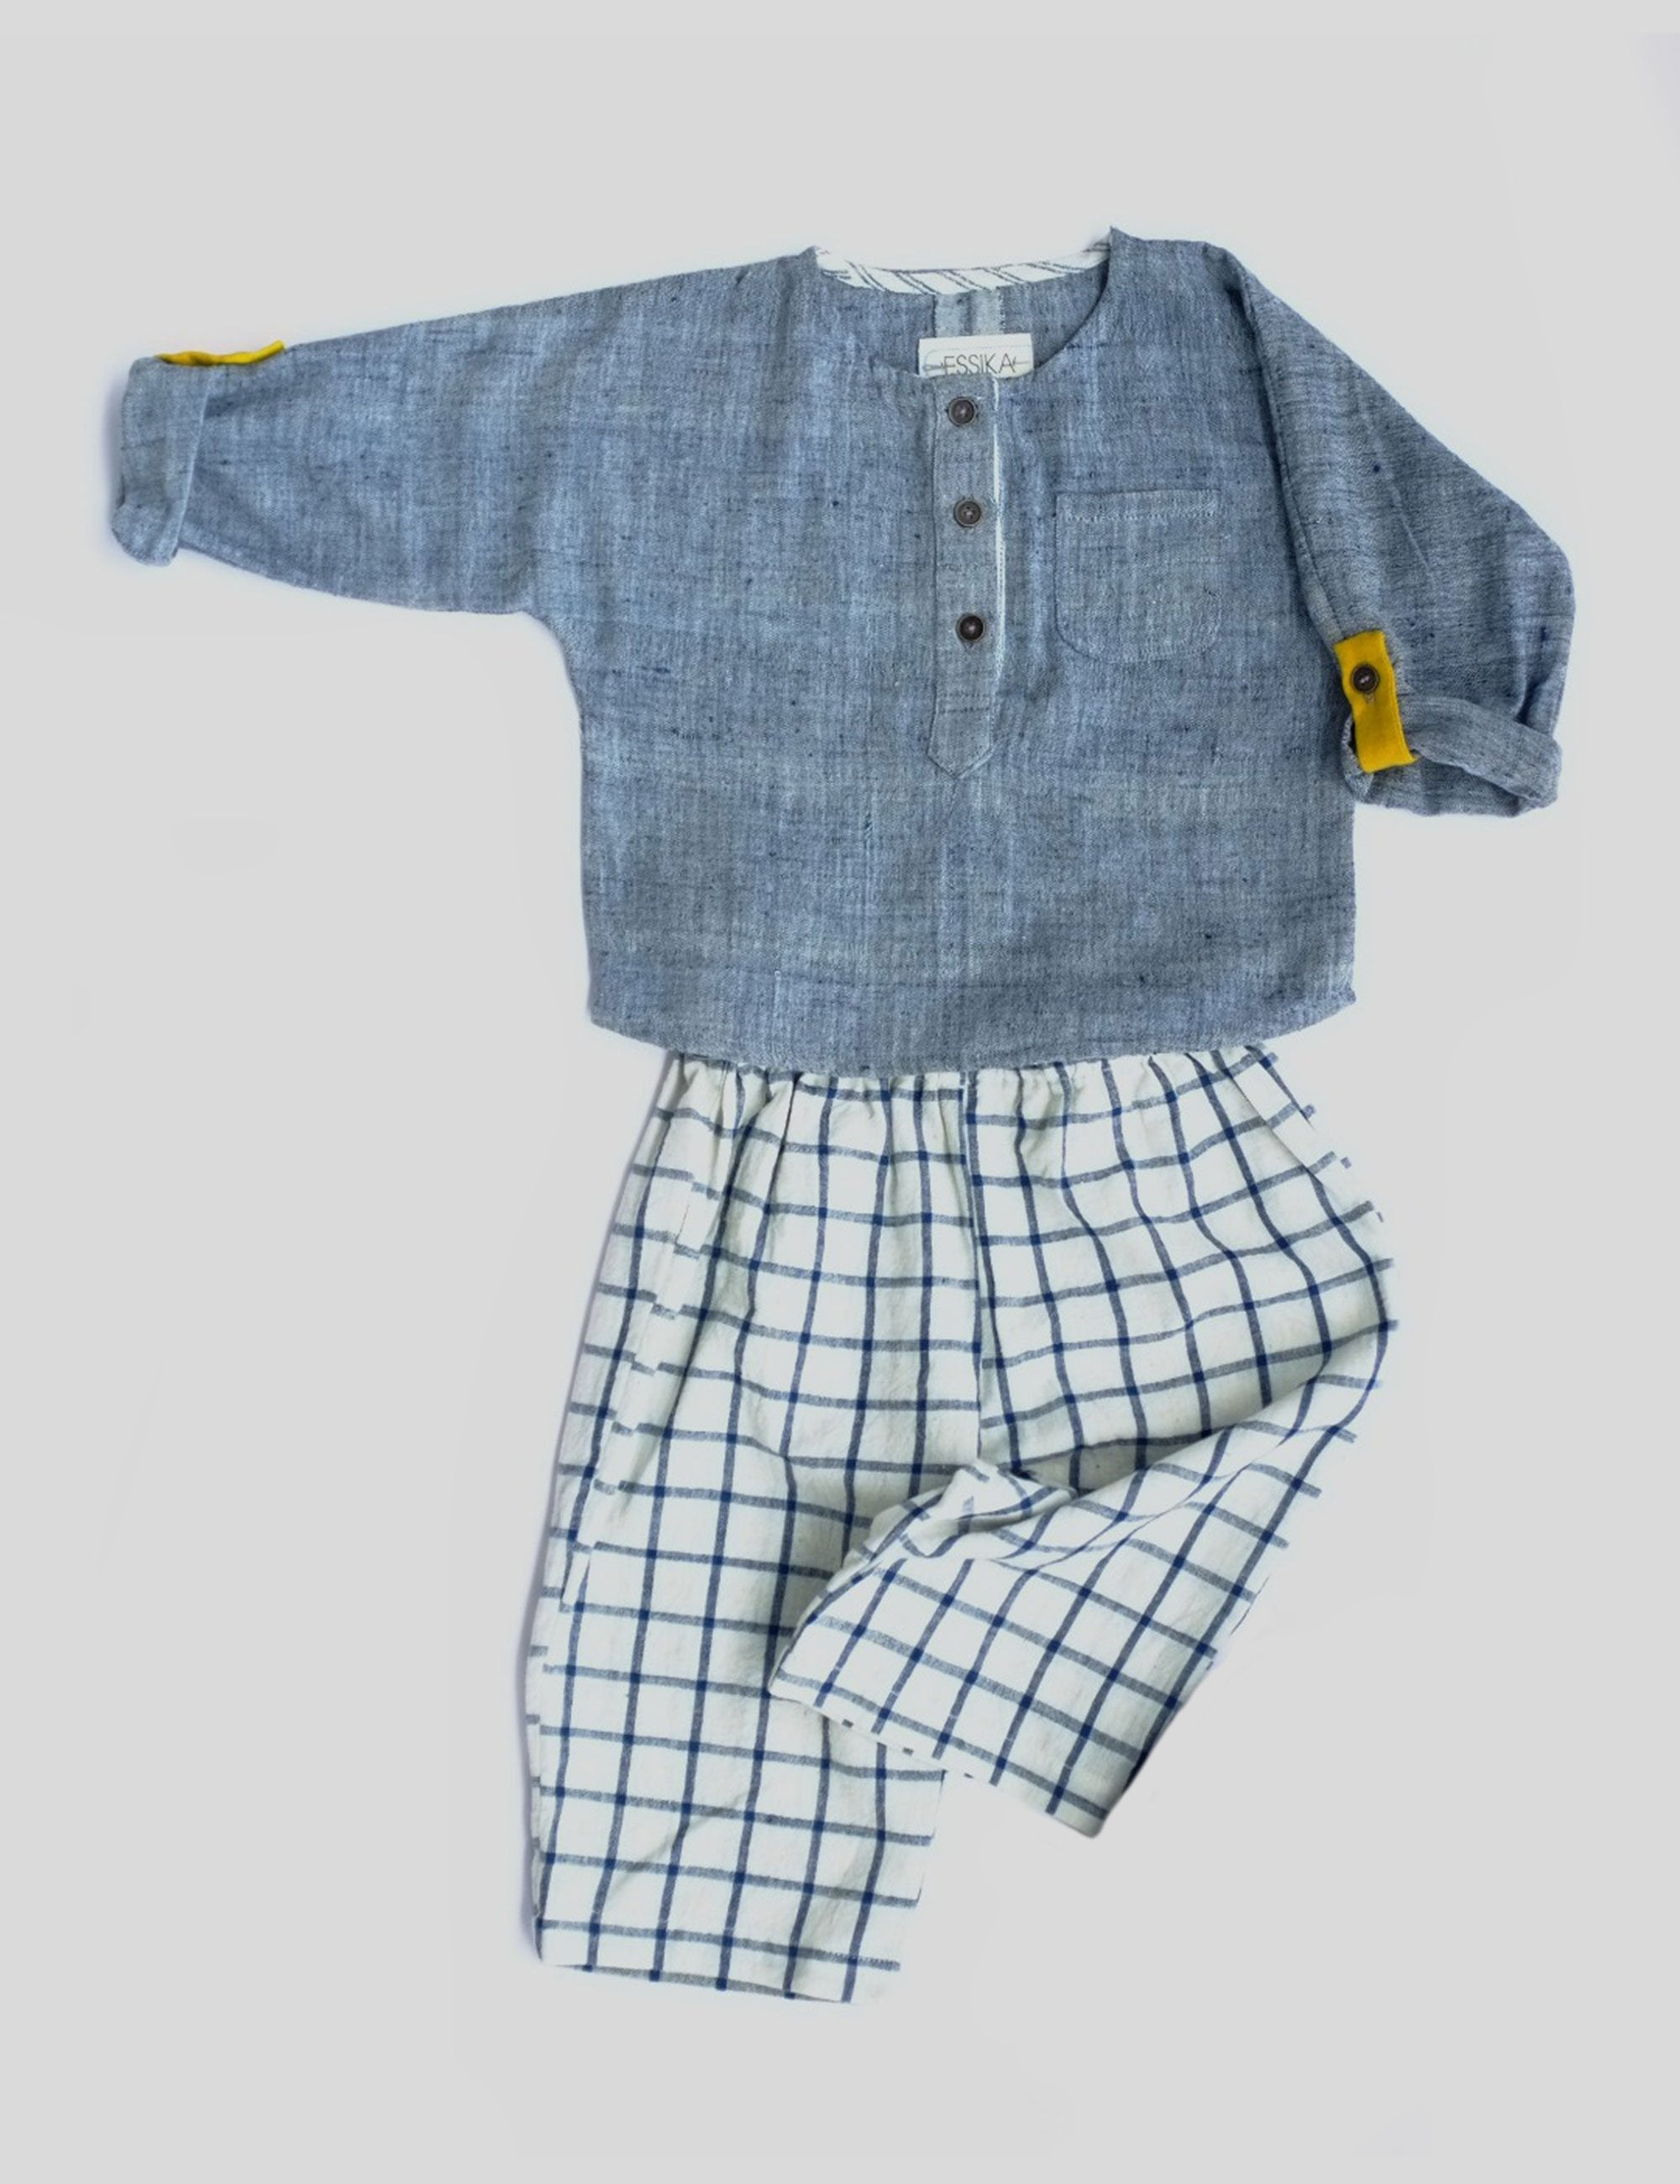 Loose Fit Lollipop Shirt with Placket in Blue Grey for Boys